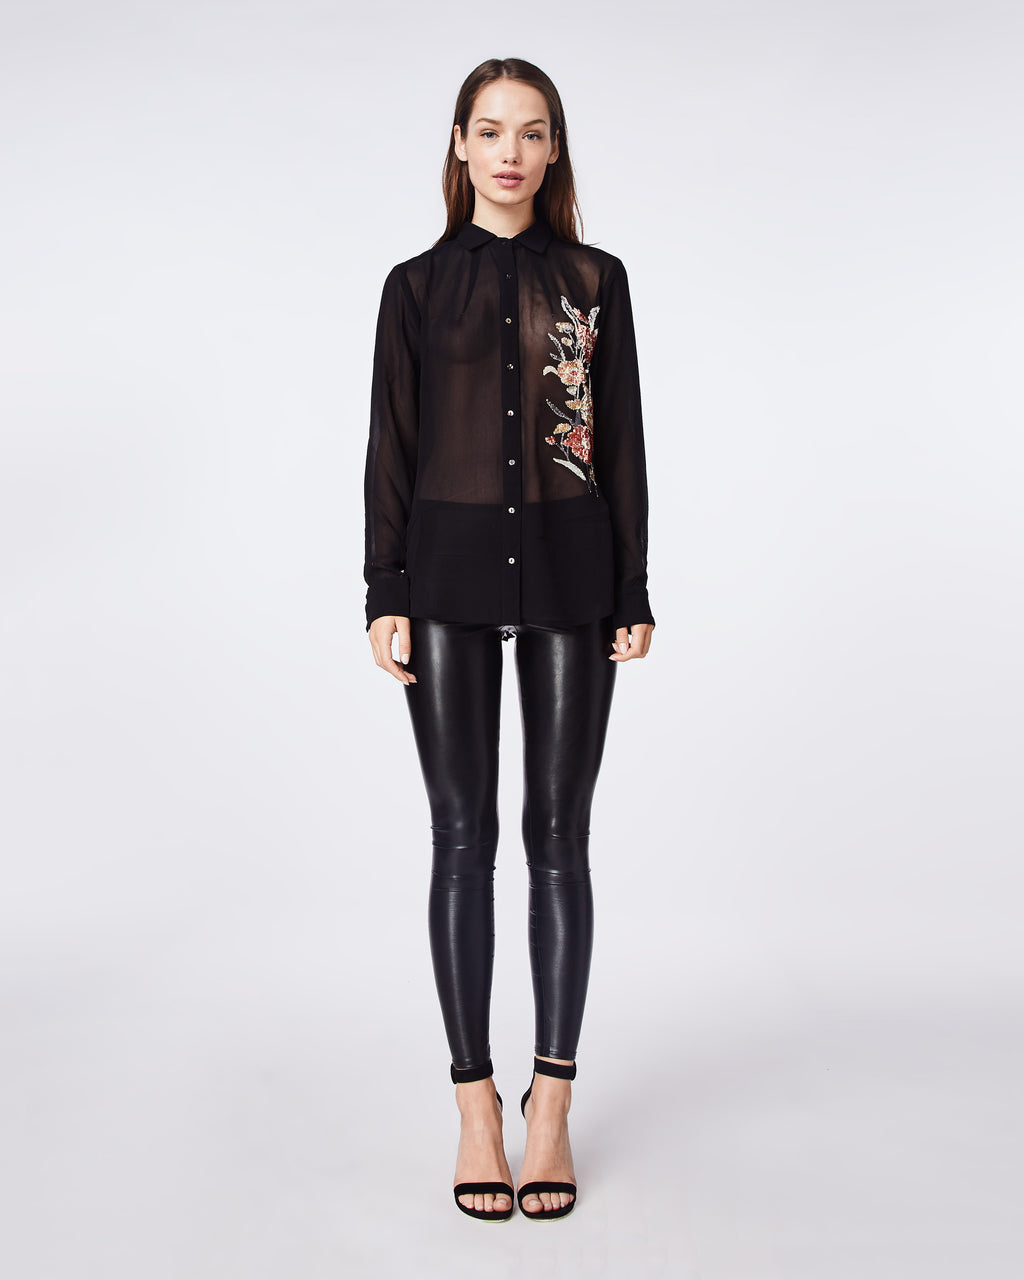 CF10275 - FALLING FLOWERS EMBROIDERY BOYFRIEND BLOUSE - tops - blouses - WITH THE FLORAL EMBROIDERY, THIS BLACK SHEER BUTTON UP TOP IS A GO TO WHEN YOU NEED TO DRESS IT UP, BUT STILL WANT TO HAVE SOME FLARE IN YOUR OUTFIT.